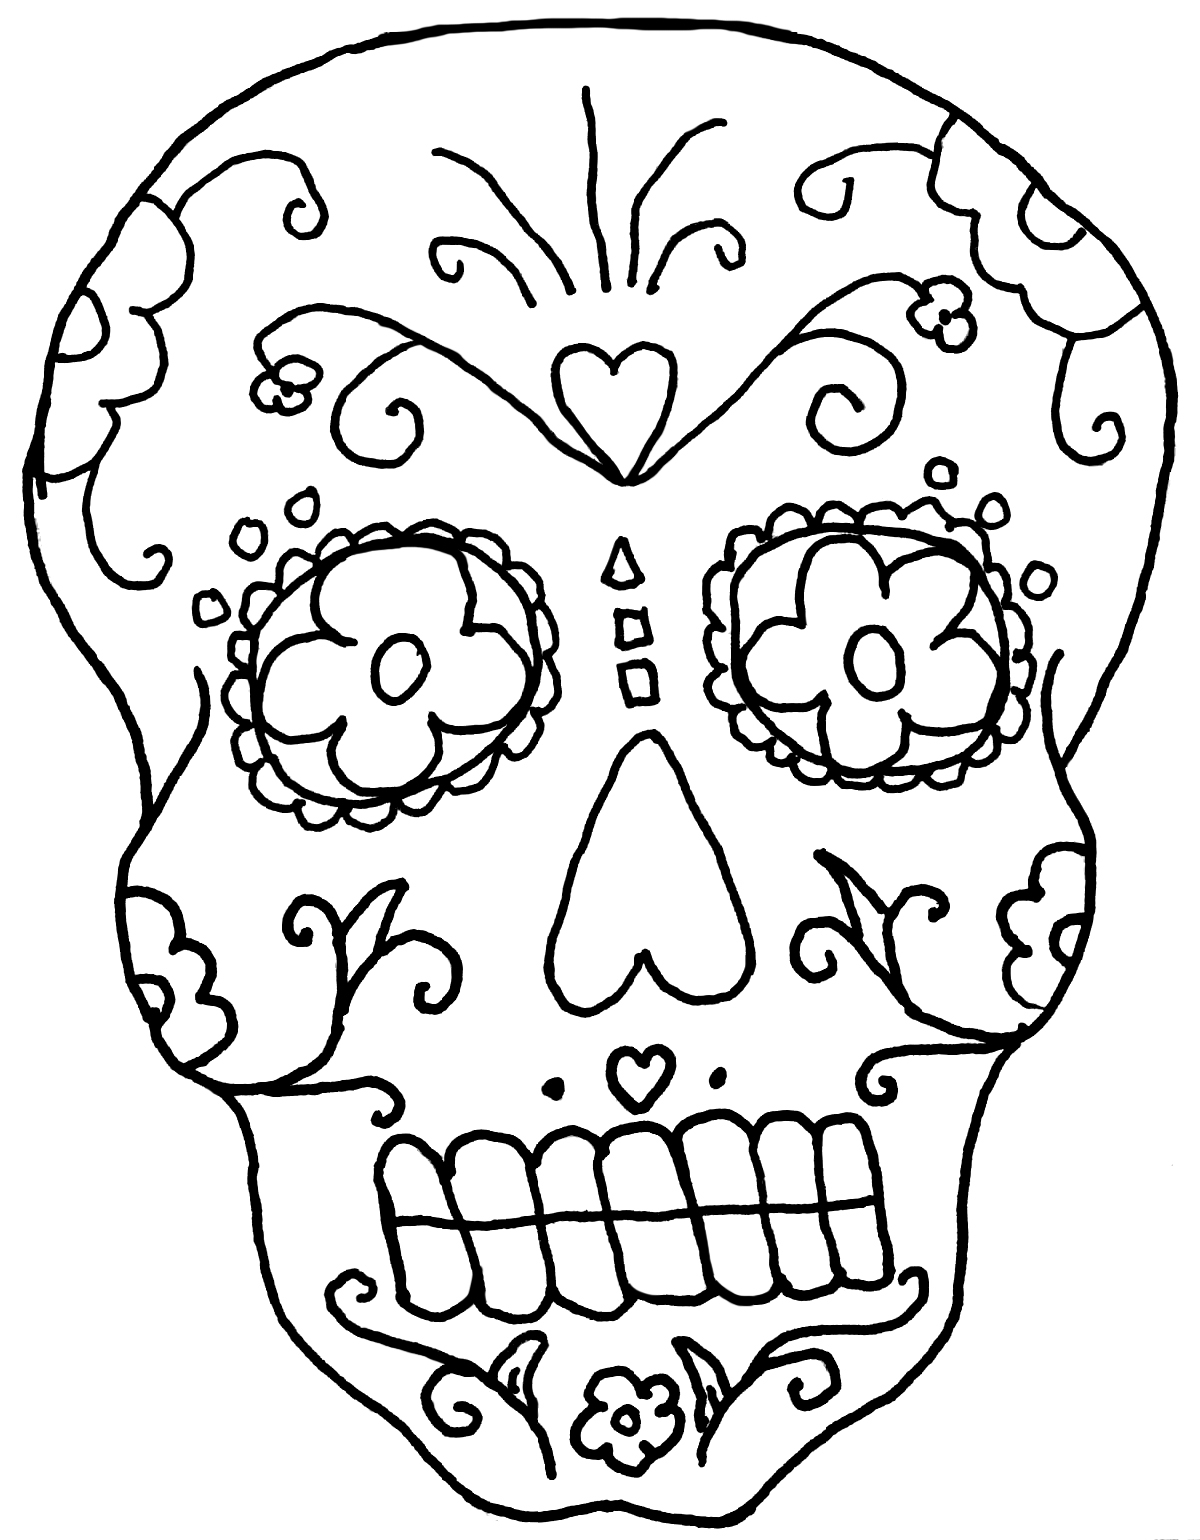 day of the dead pictures to color free printable day of the dead coloring pages best to pictures the color dead of day